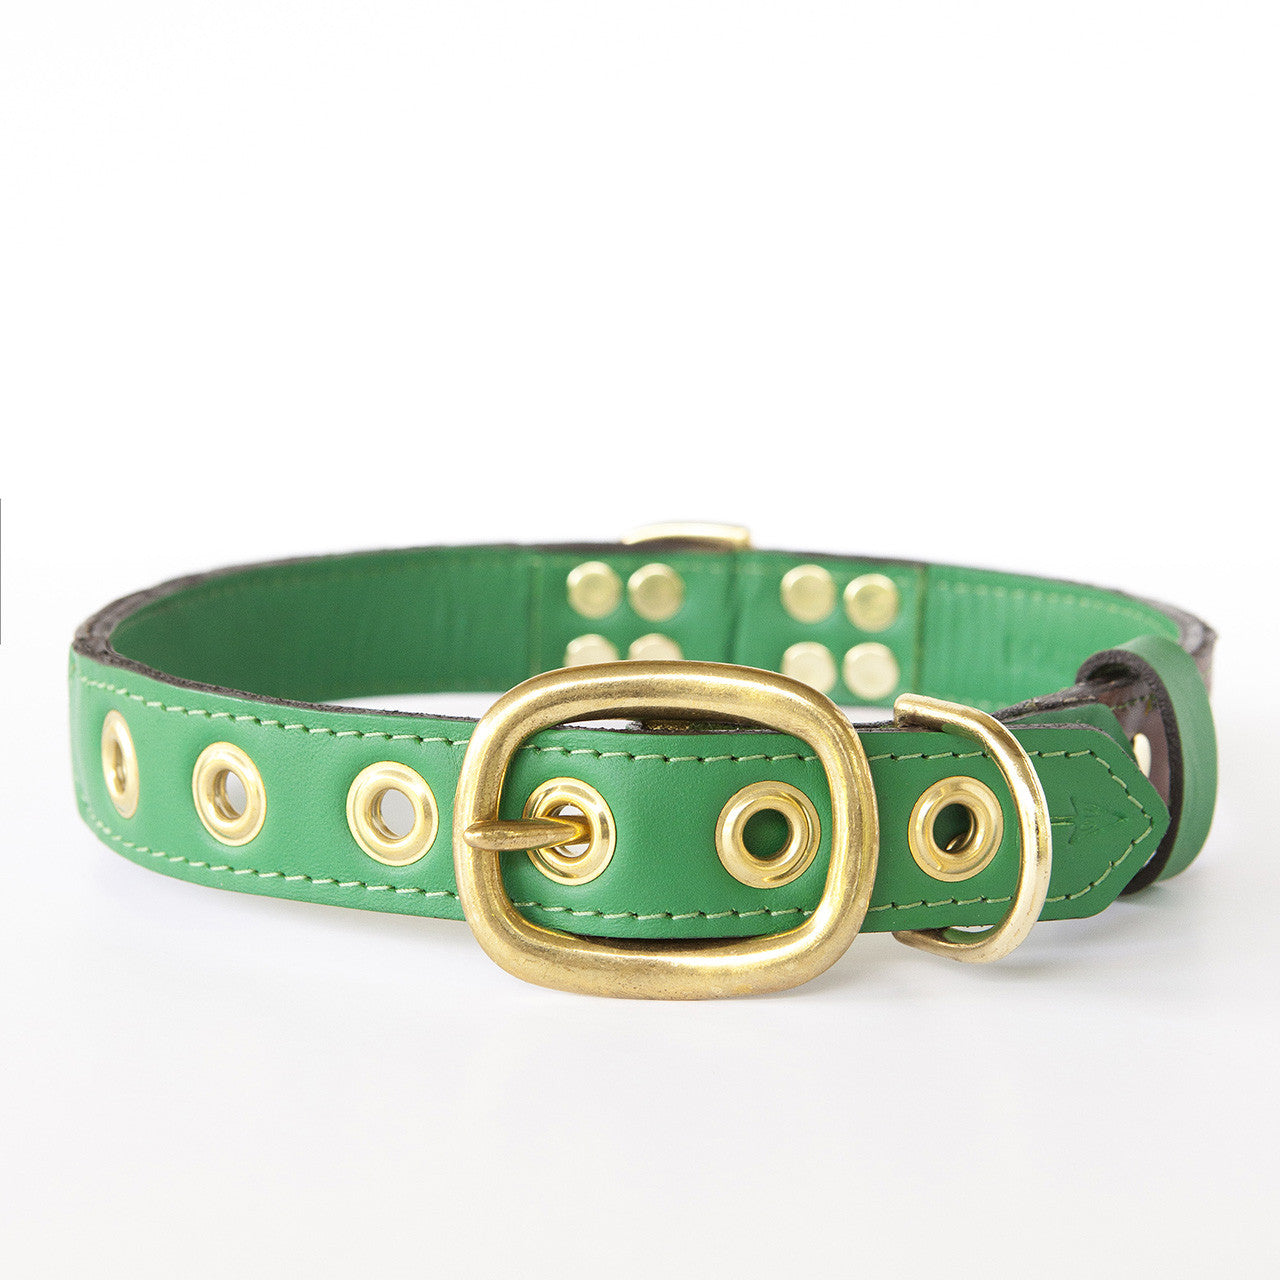 Emerald Green Dog Collar with Chocolate Leather + Green and Yellow Spike Stitching (back view)